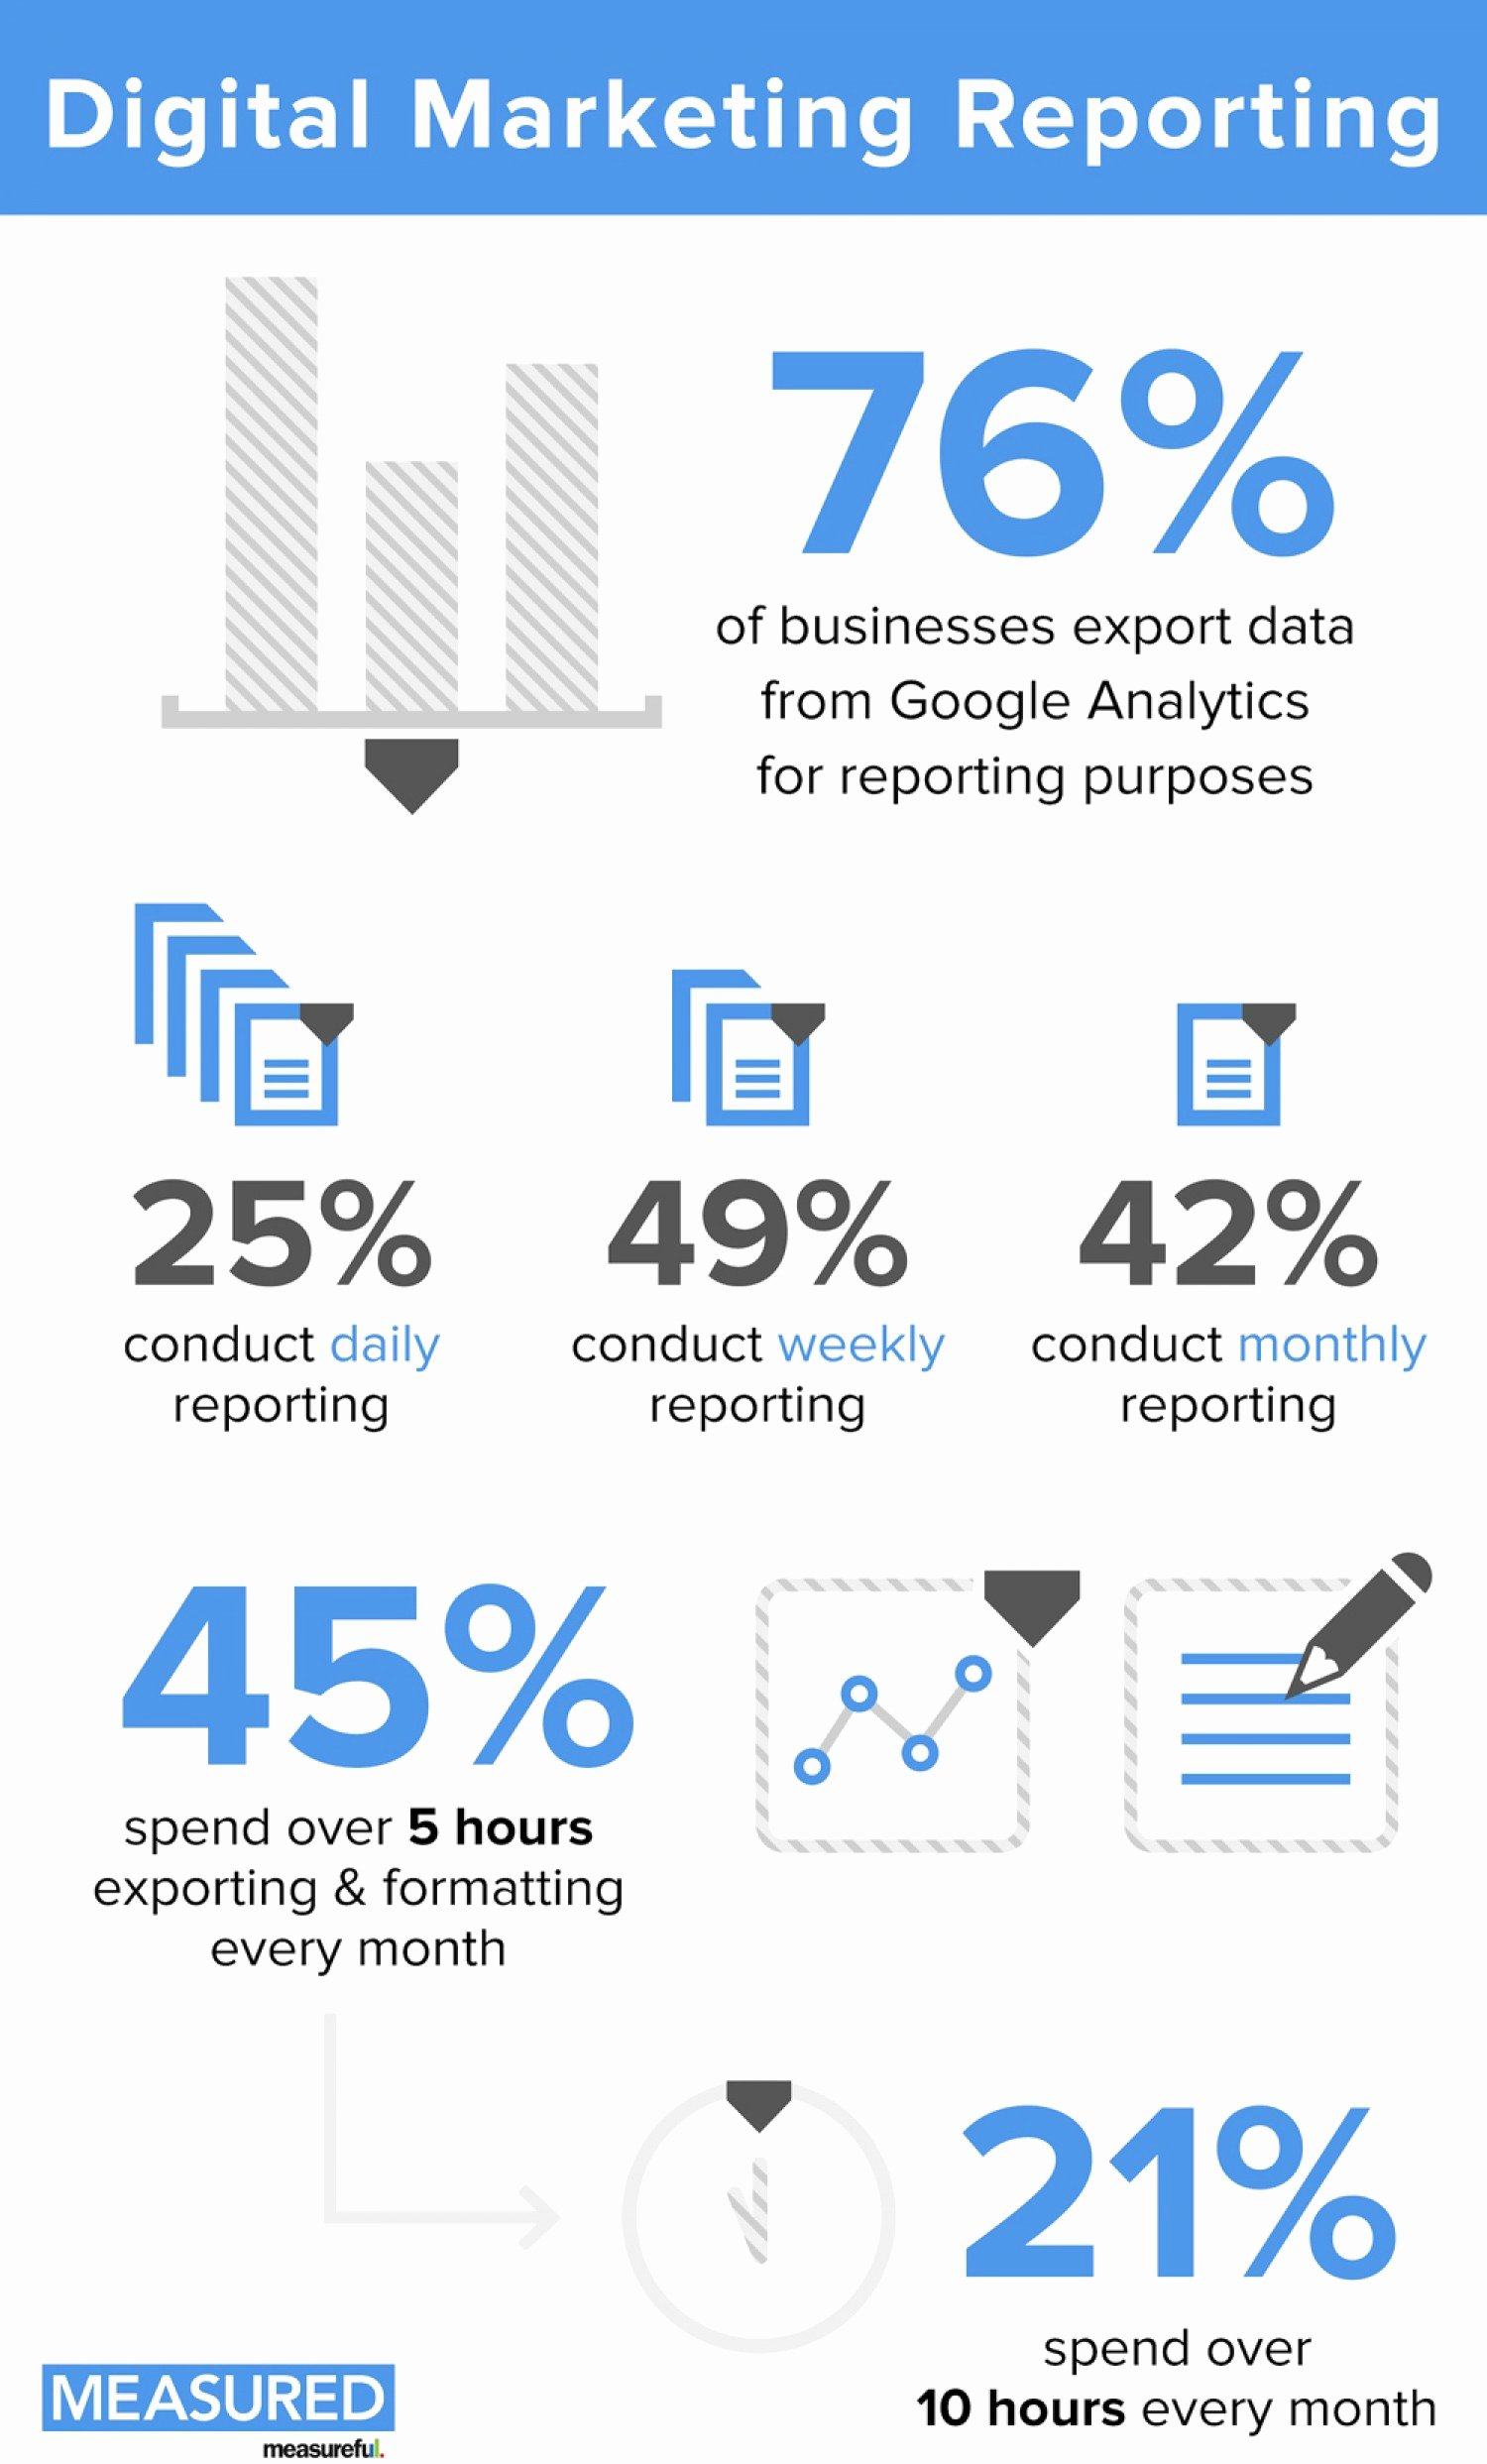 Digital Marketing Report Template Inspirational Digital Marketing Reporting